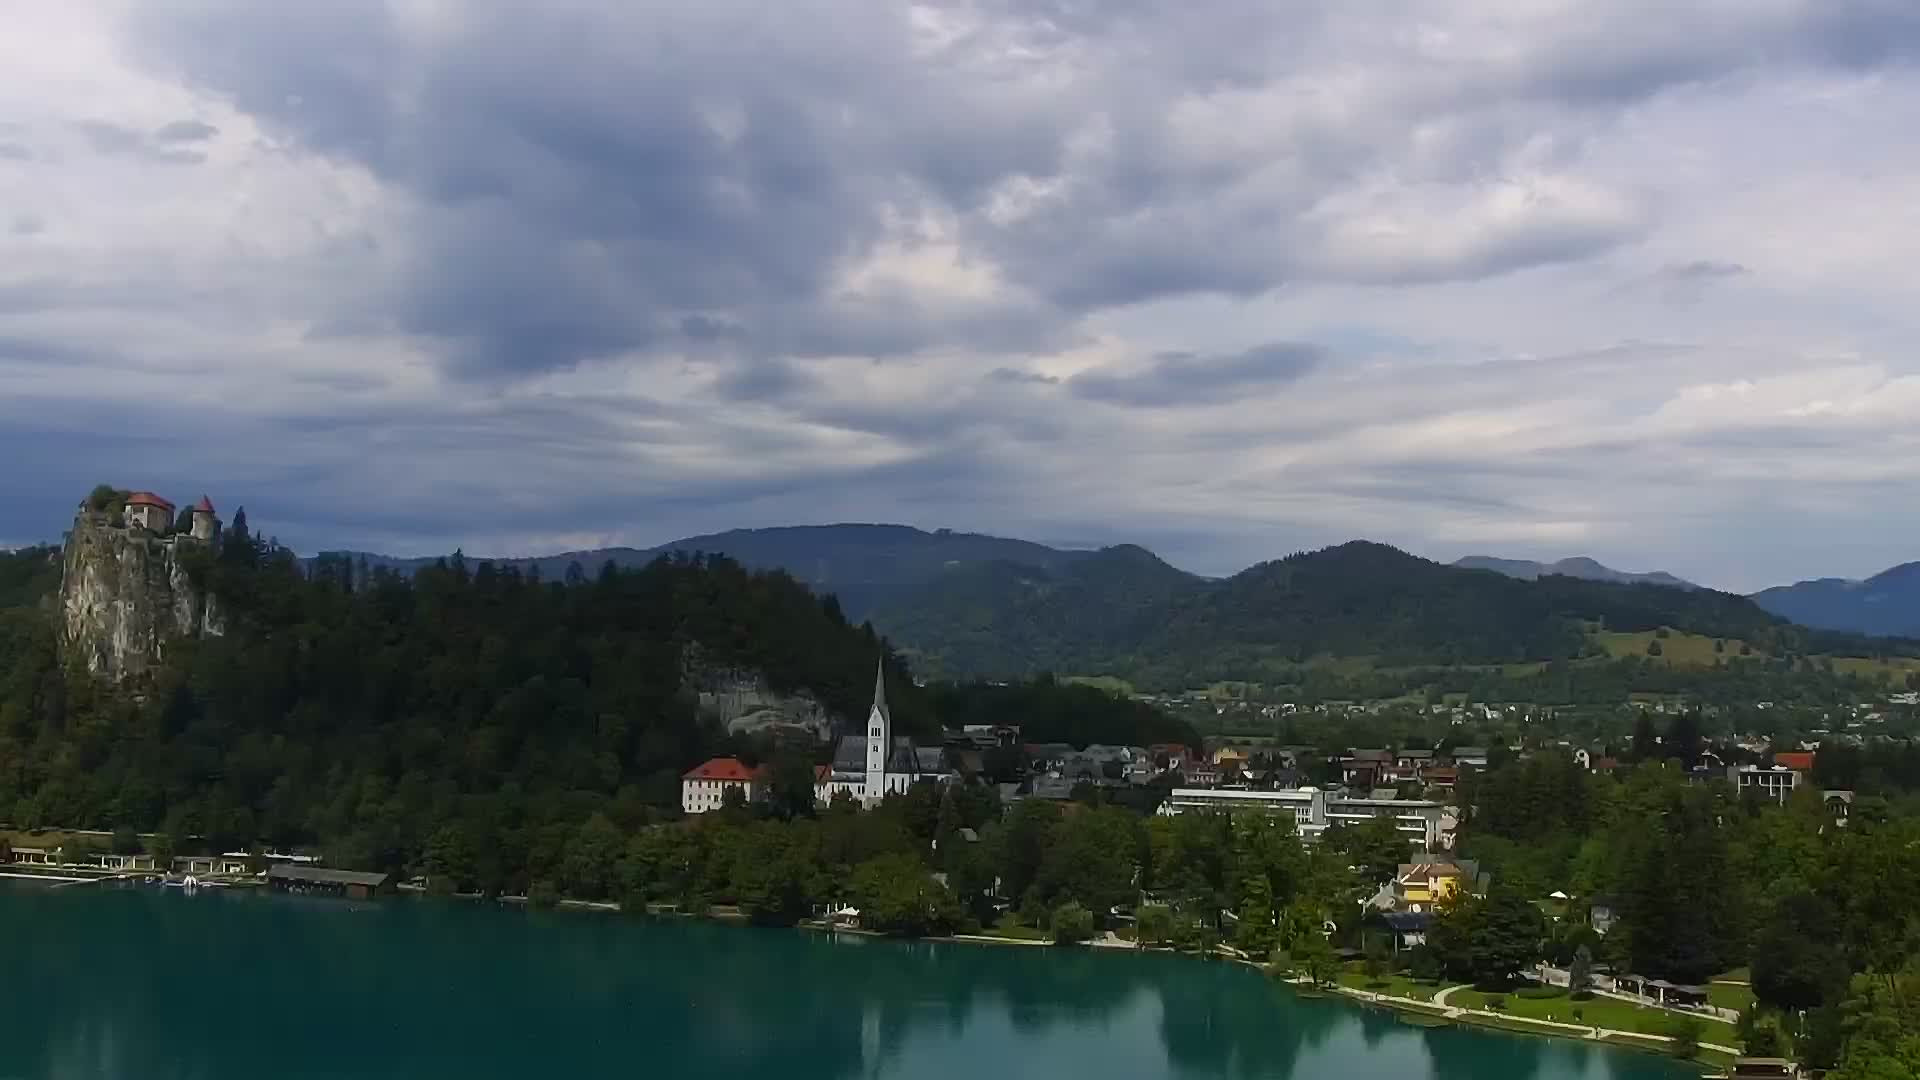 Bled Tue. 12:52